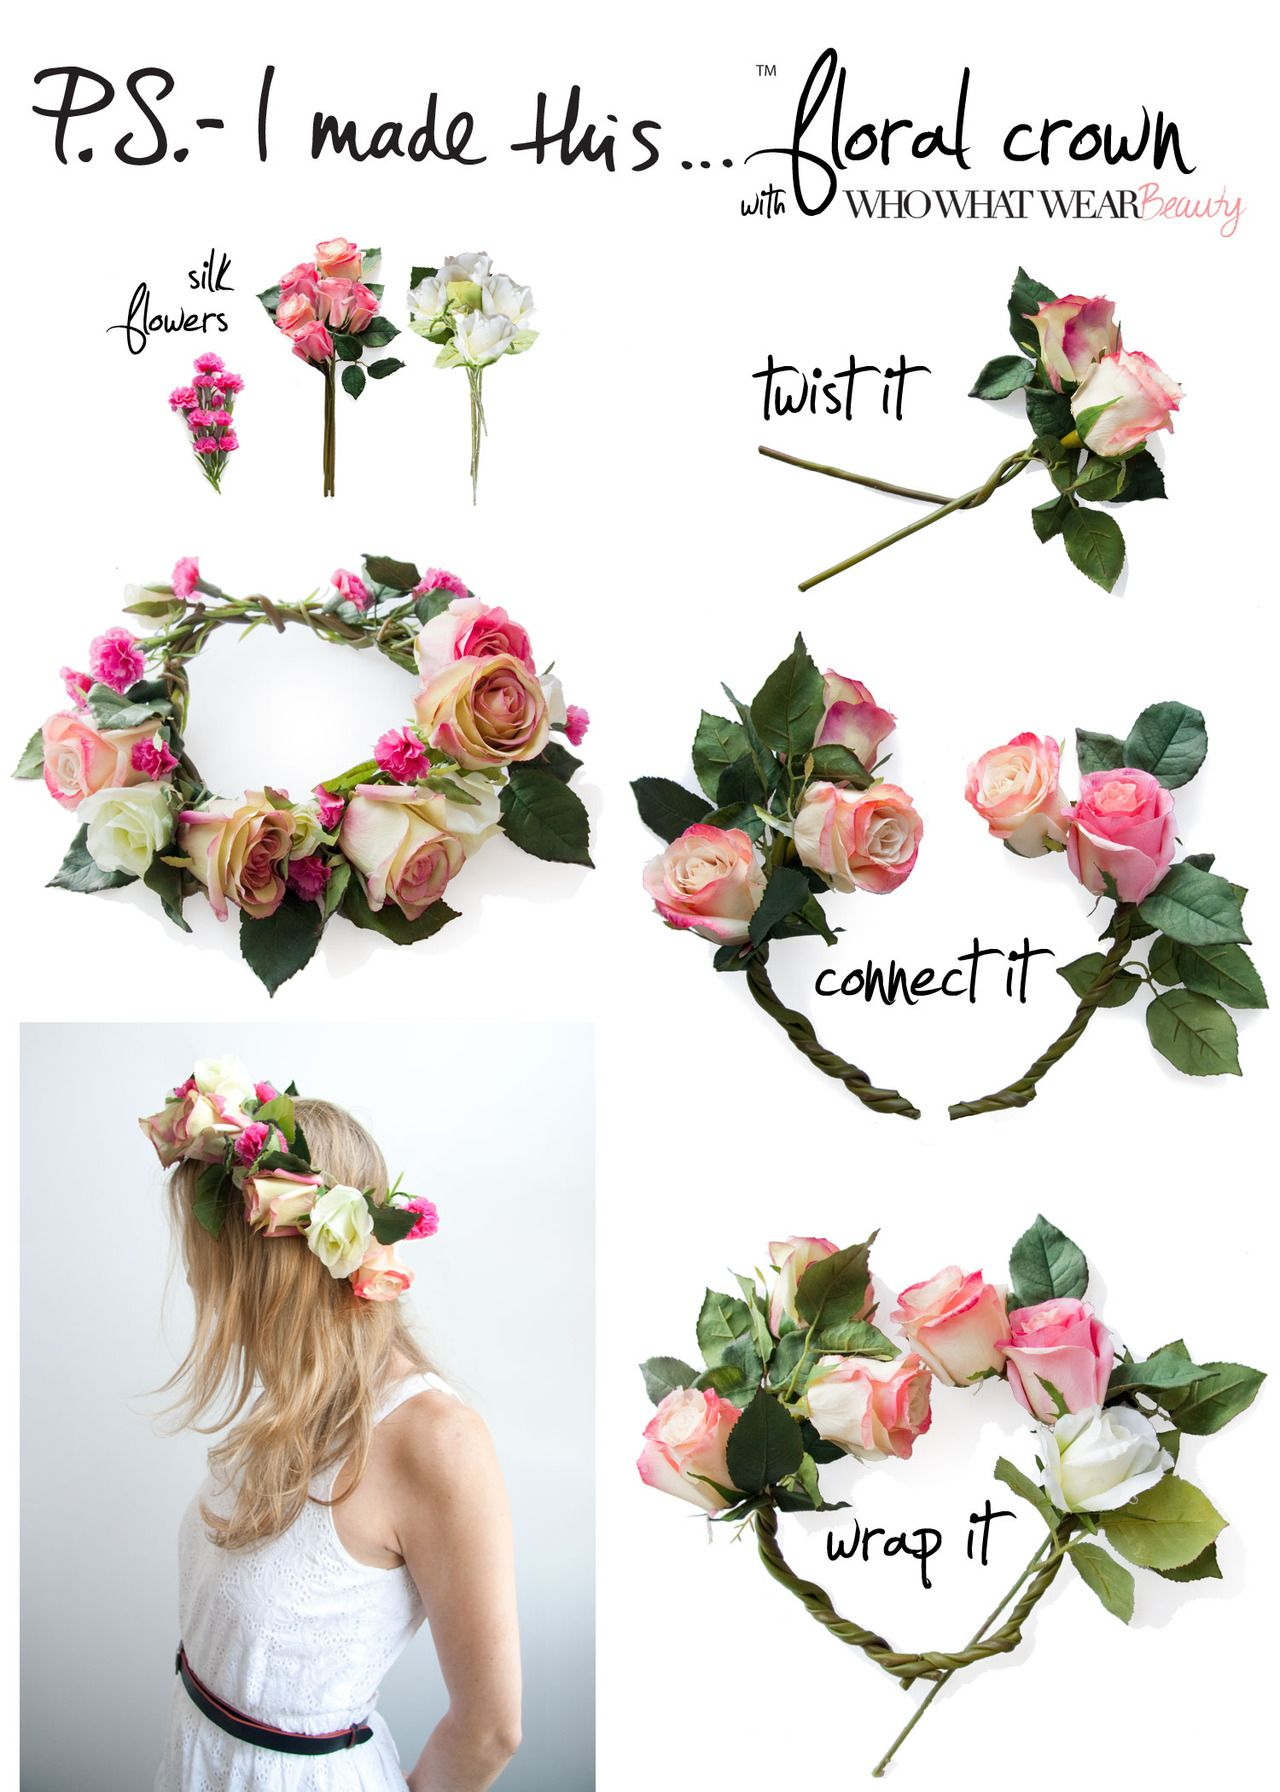 Ps i made this floral crown diy psimadethis floralcrown diy floral crown weddings diy craft crafts easy crafts diy ideas diy crafts crafty diy decor craft decorations how to tutorials teen crafts izmirmasajfo